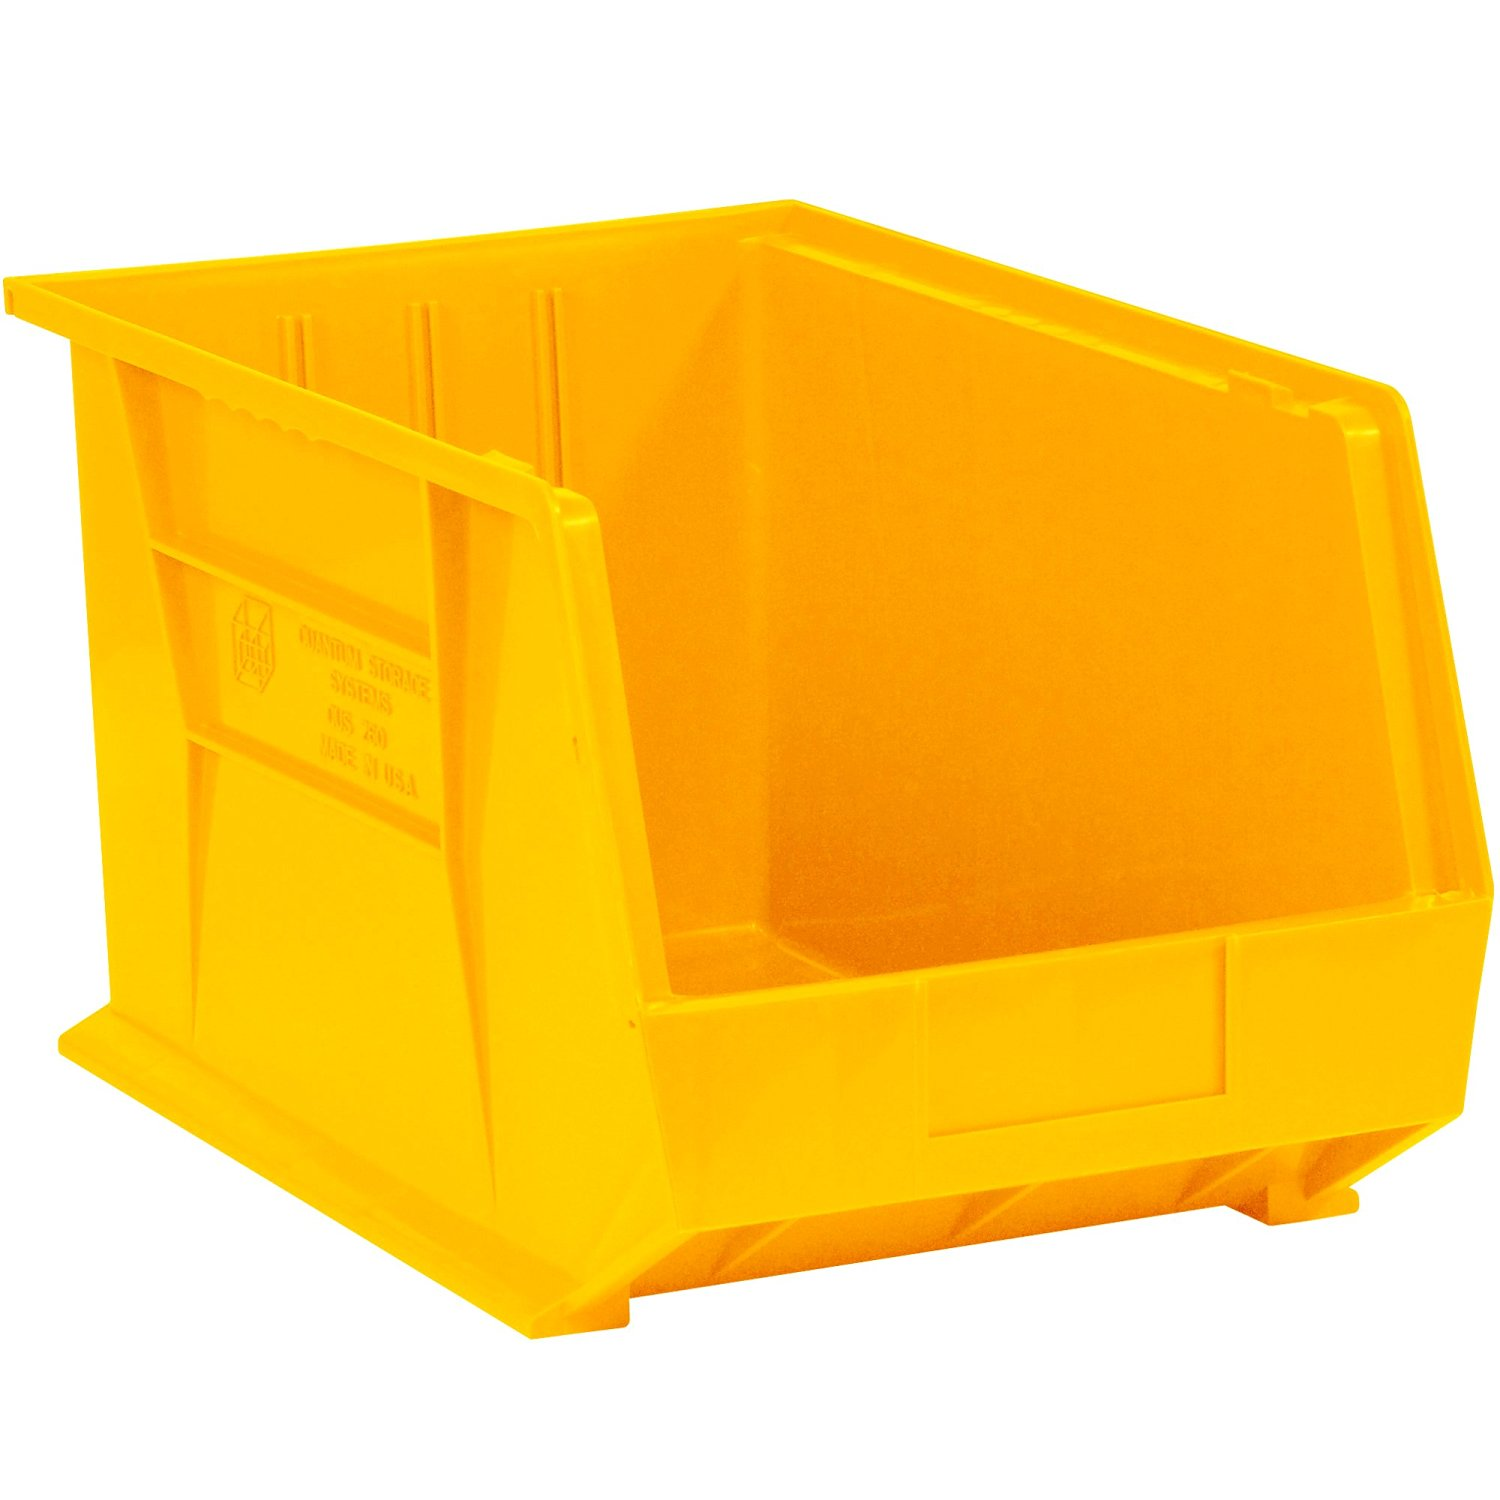 "Aviditi BINP1611Y Plastic Stack and Hang Bin Boxes, 16"" x 11"" x 8"", Yellow (Pack of 4)"